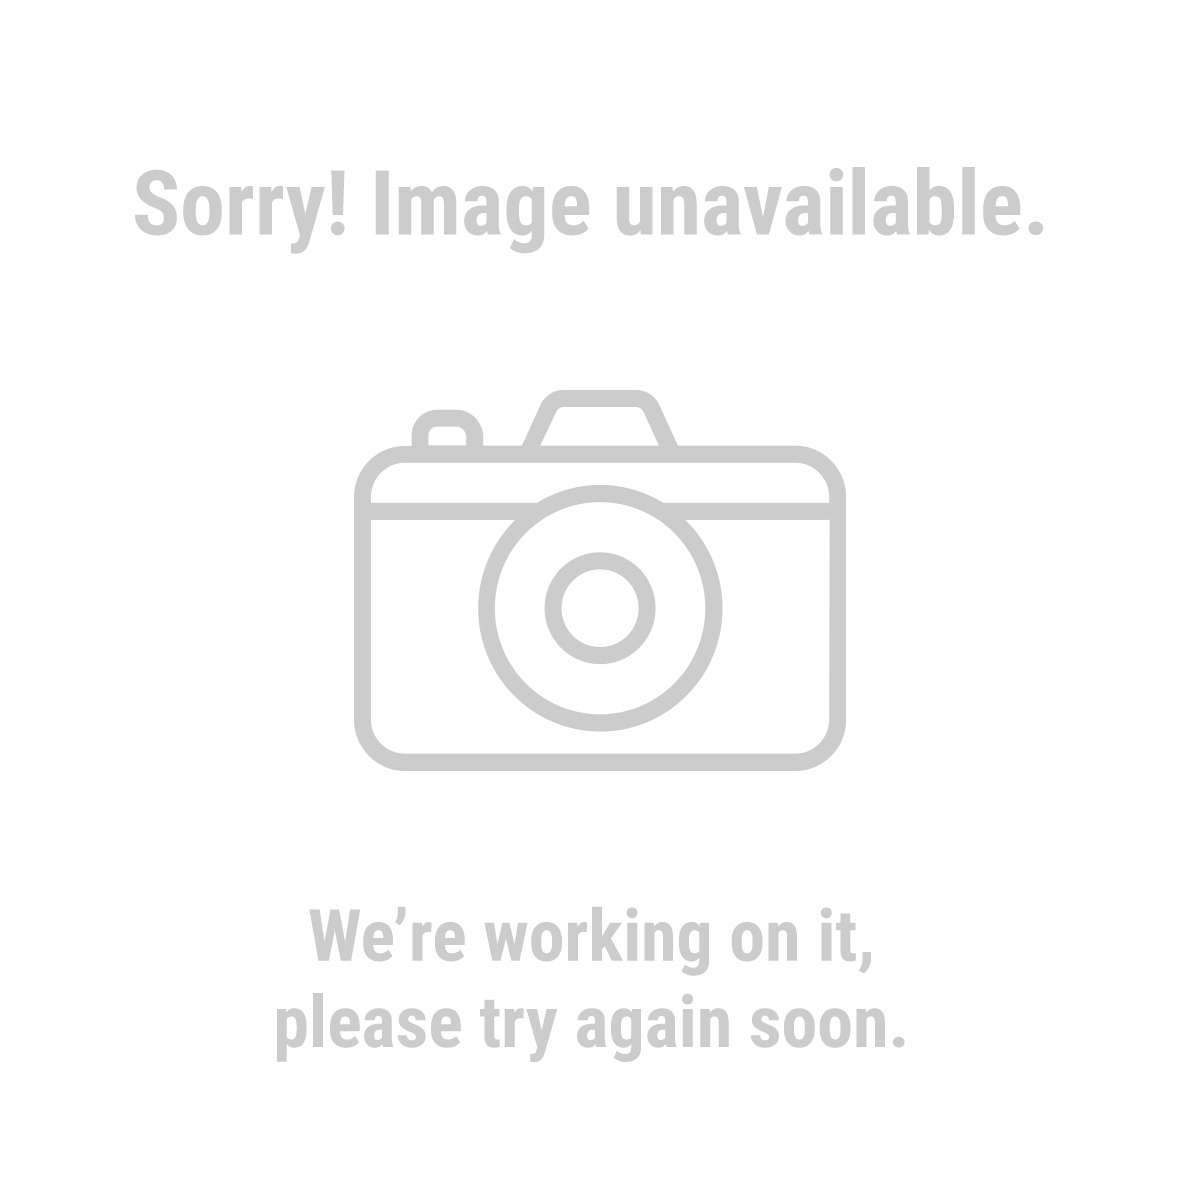 HFT® 61765 9 ft. 6 in. x 7 ft. 4 in. Camouflage All Purpose/Weather Resistant Tarp